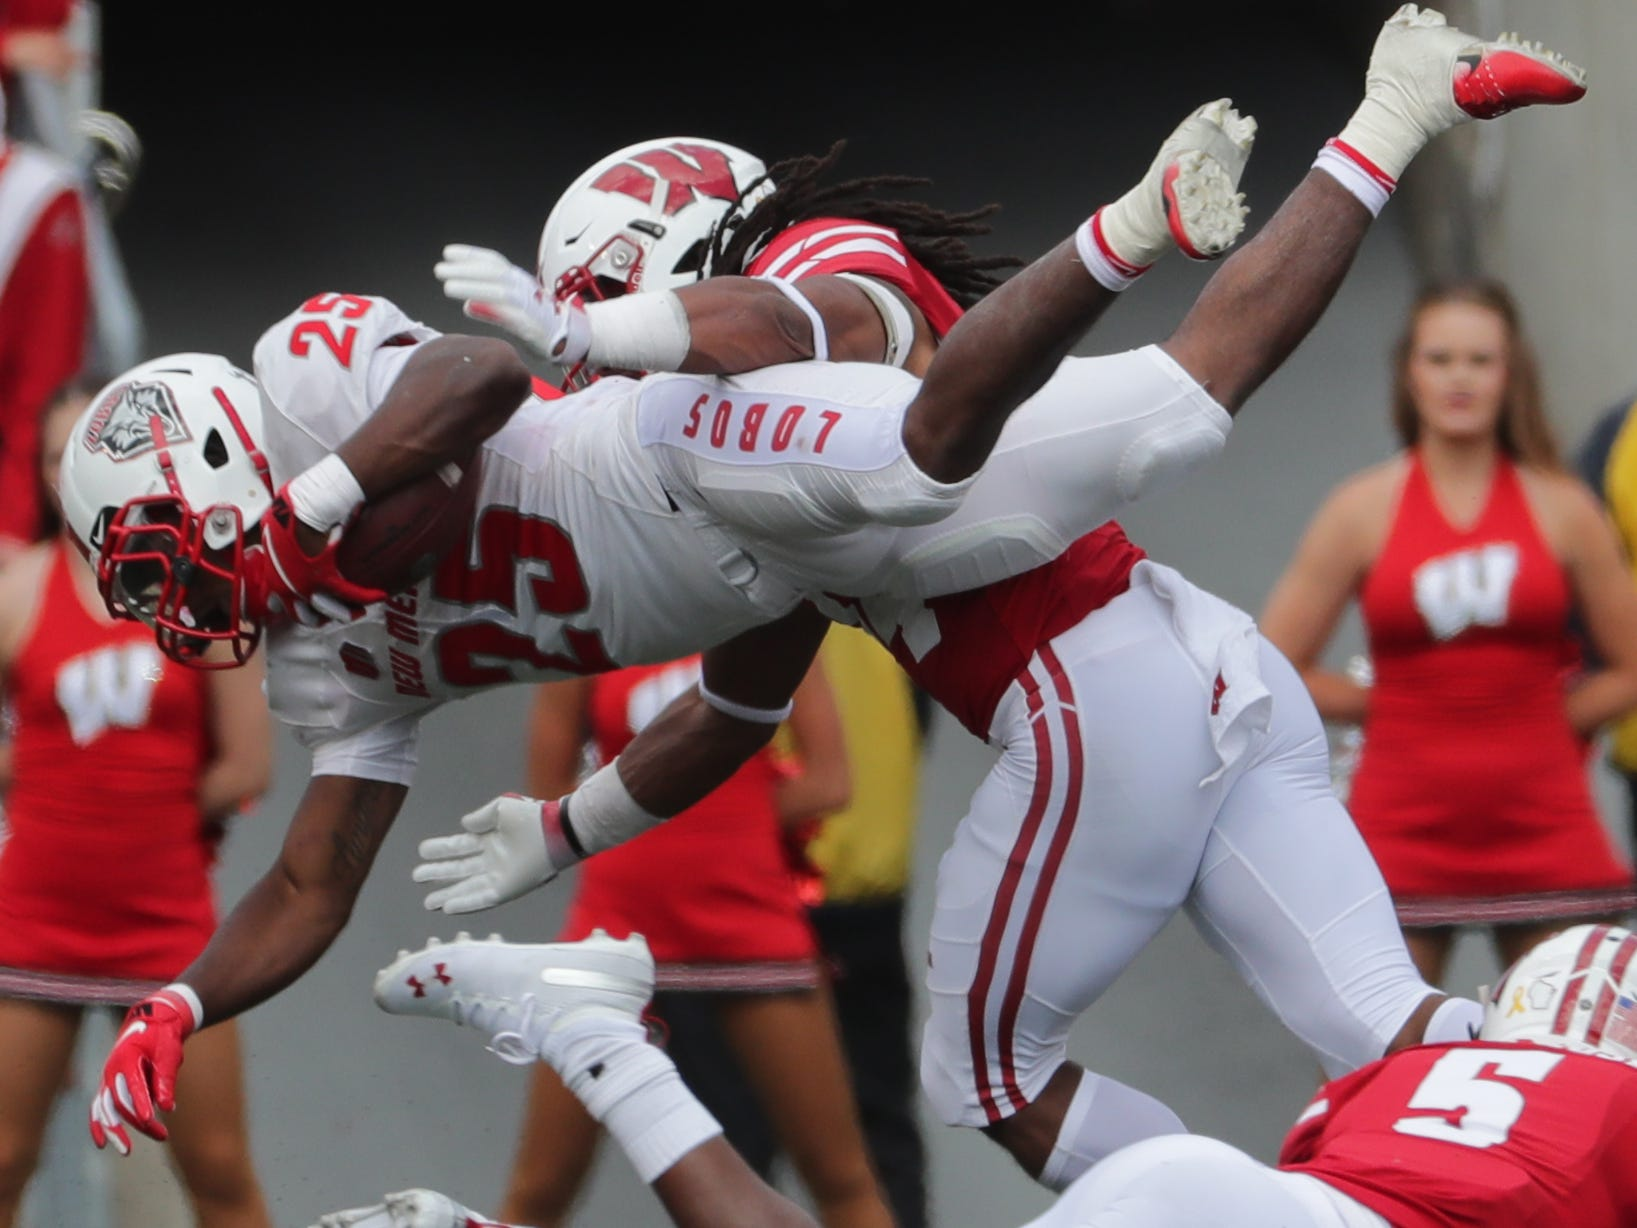 New Mexico running back Tyrone Owens goes airborne before being tackled by Wisconsin safety D'Cota Dixon.